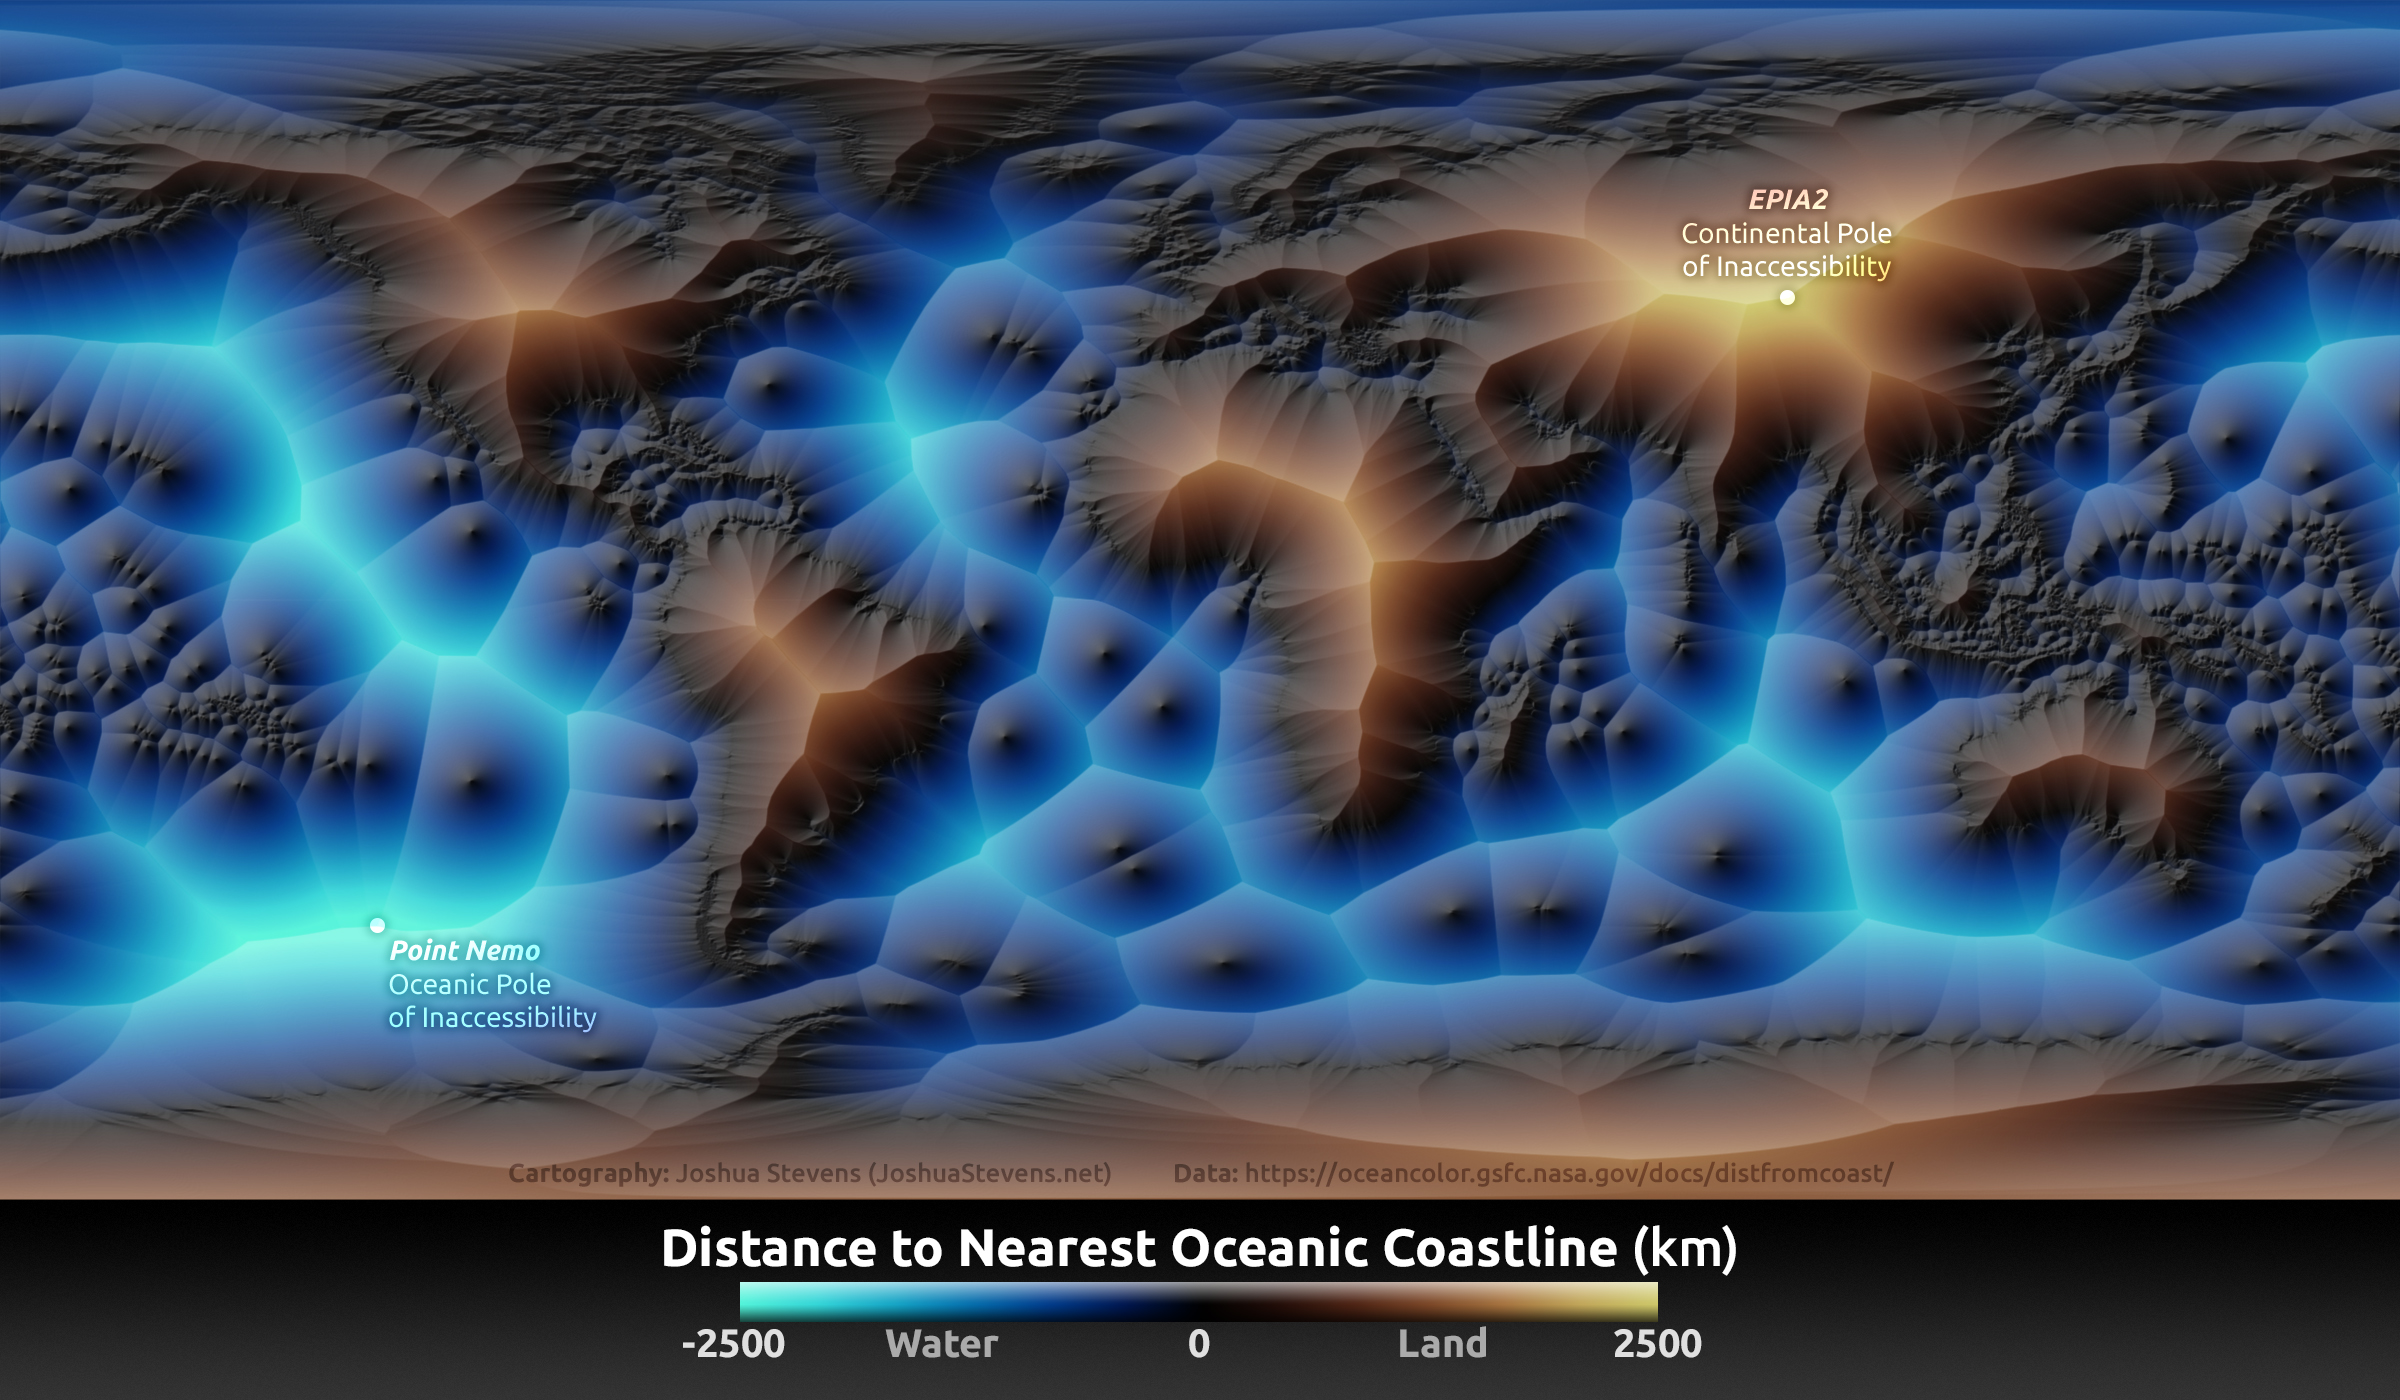 Mapping the Distance to the Nearest Coastline